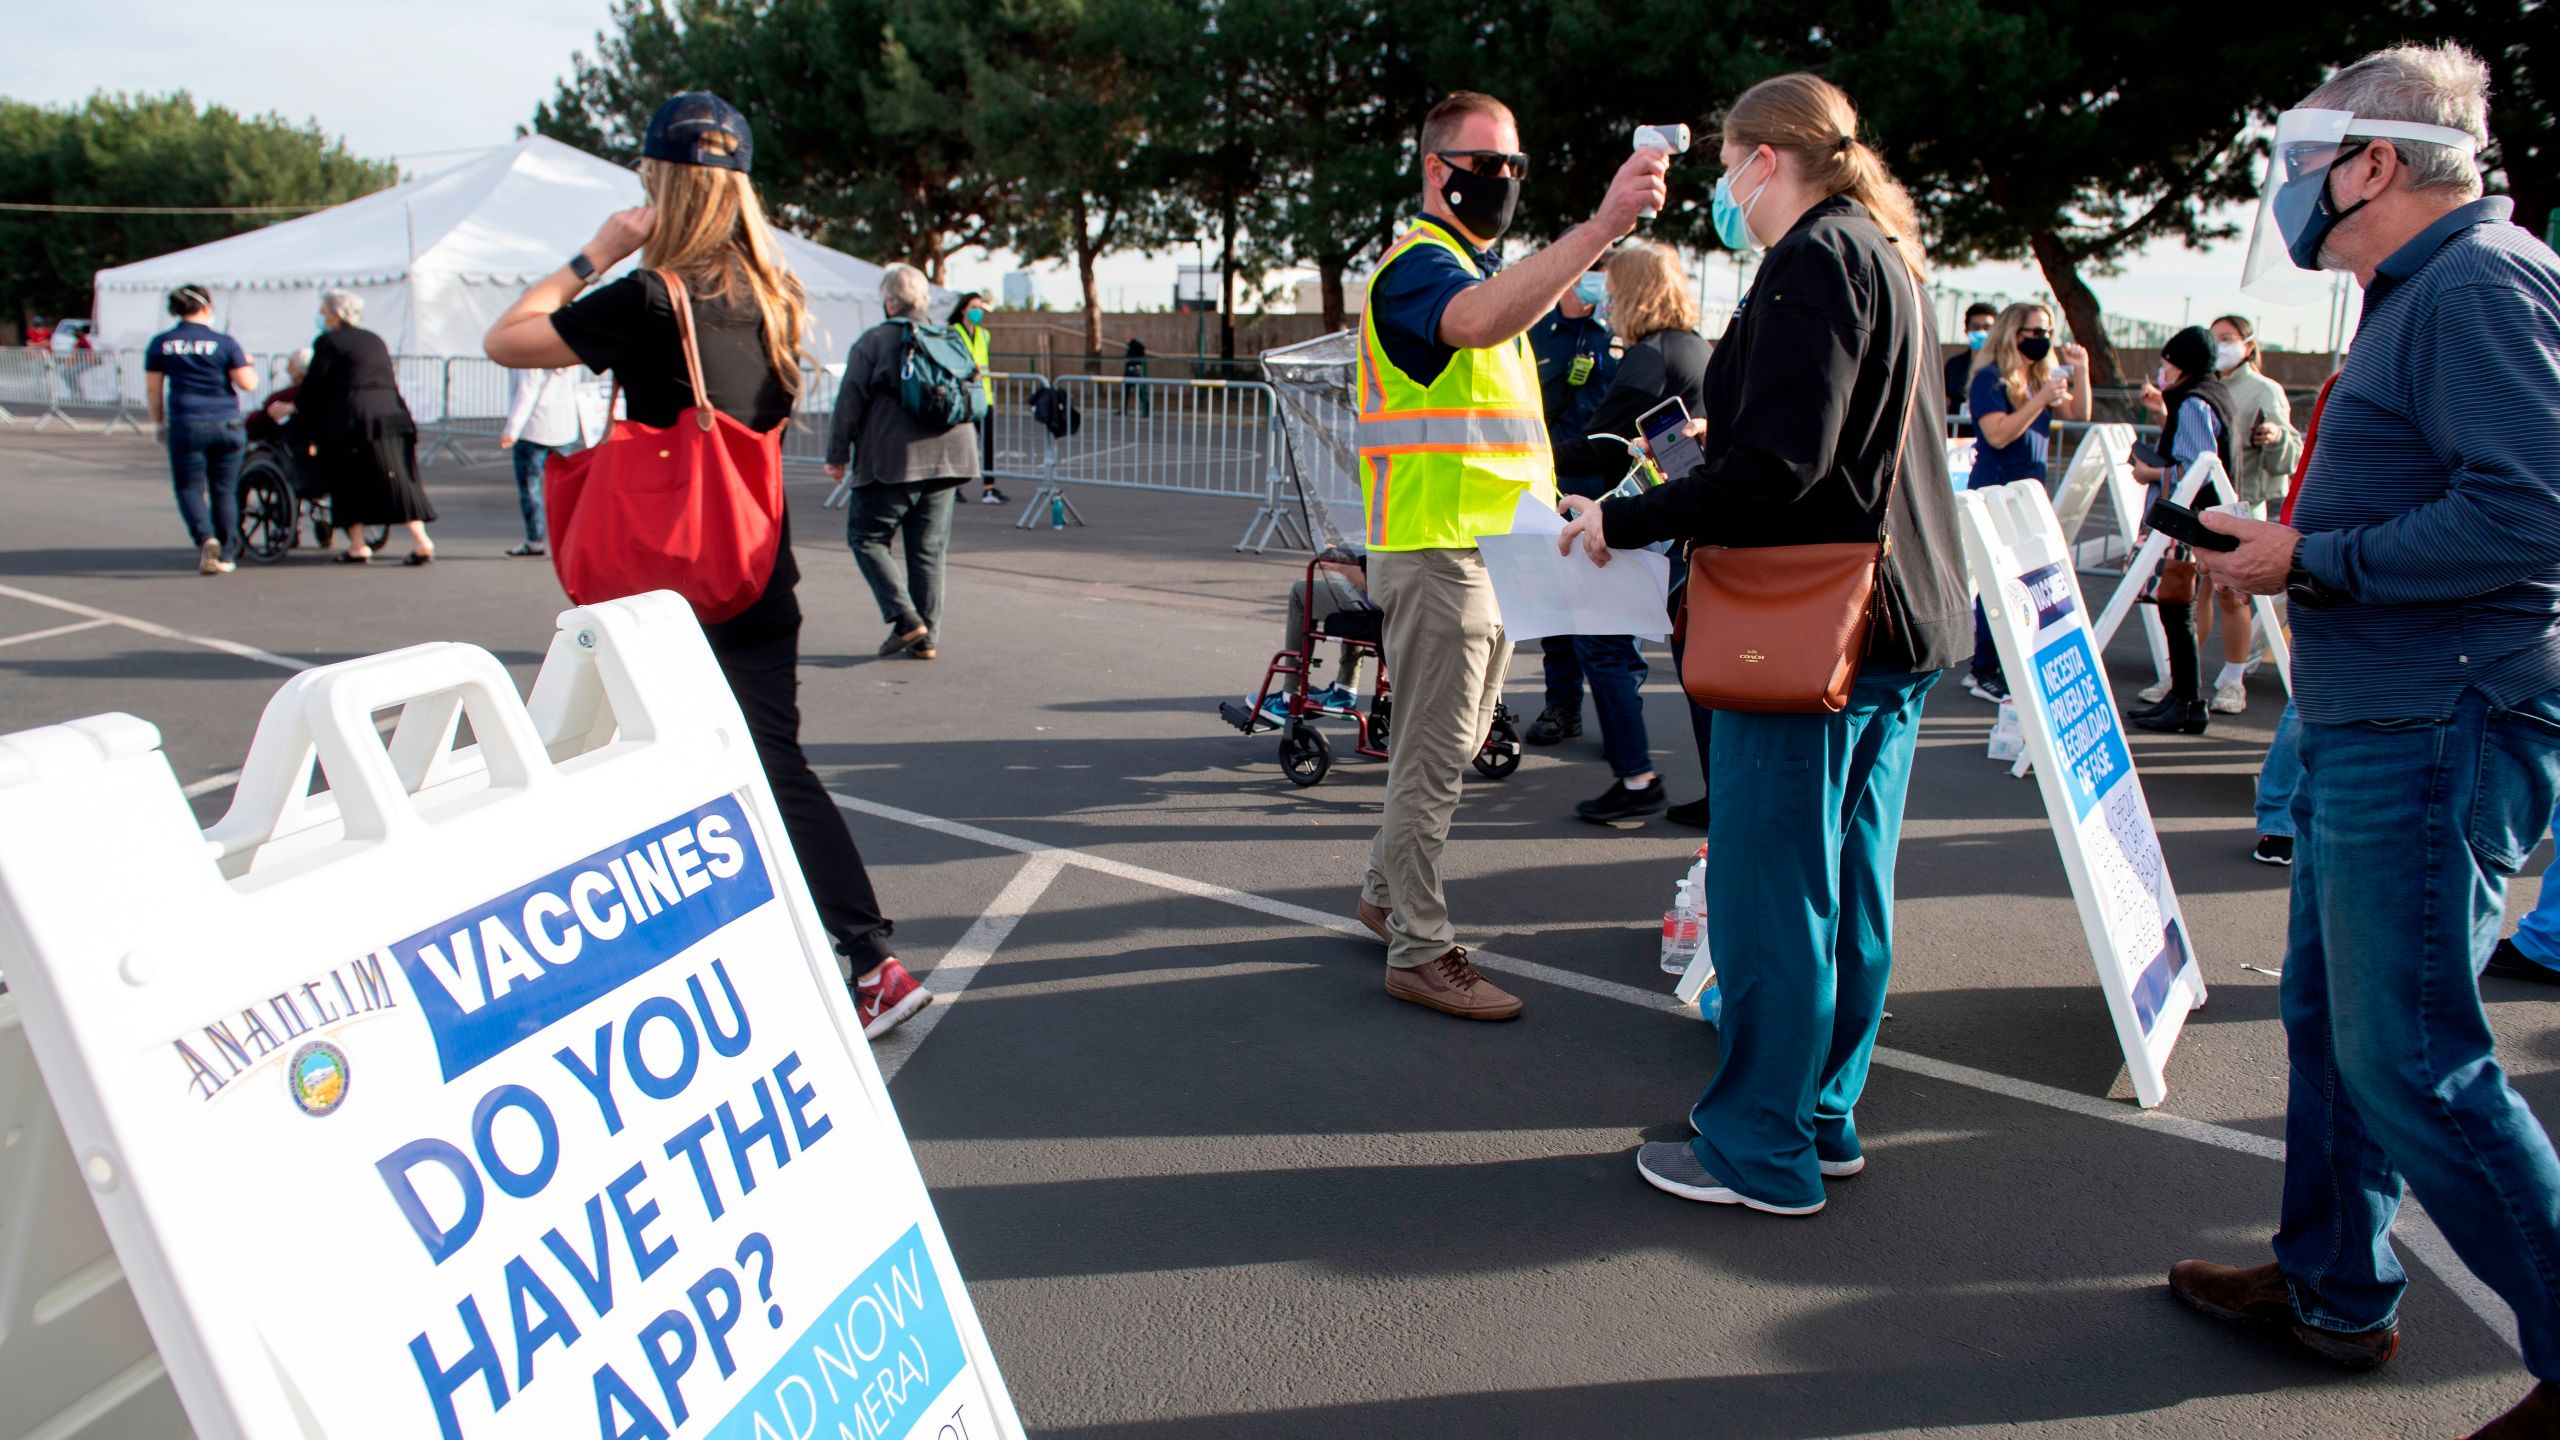 People have their temperature checked as they arrive at a Disneyland parking lot to receive COVID-19 vaccines on Jan. 13, 2021, in Anaheim. (VALERIE MACON/AFP via Getty Images)